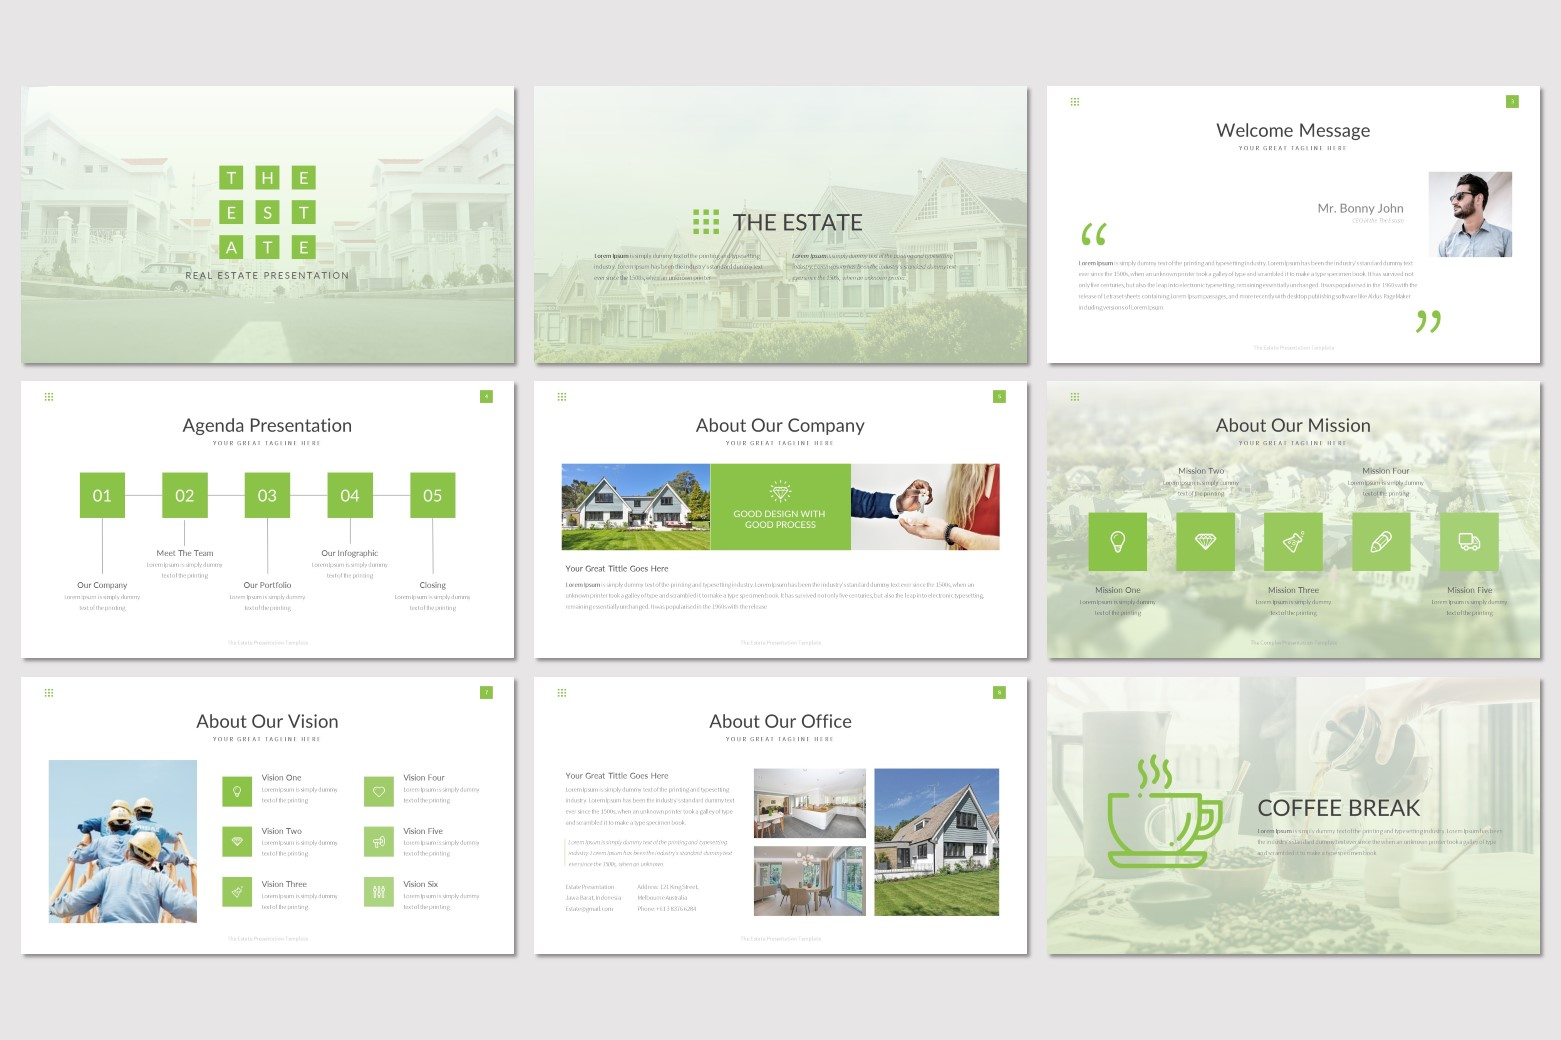 The Estate - Keynote Template example image 2